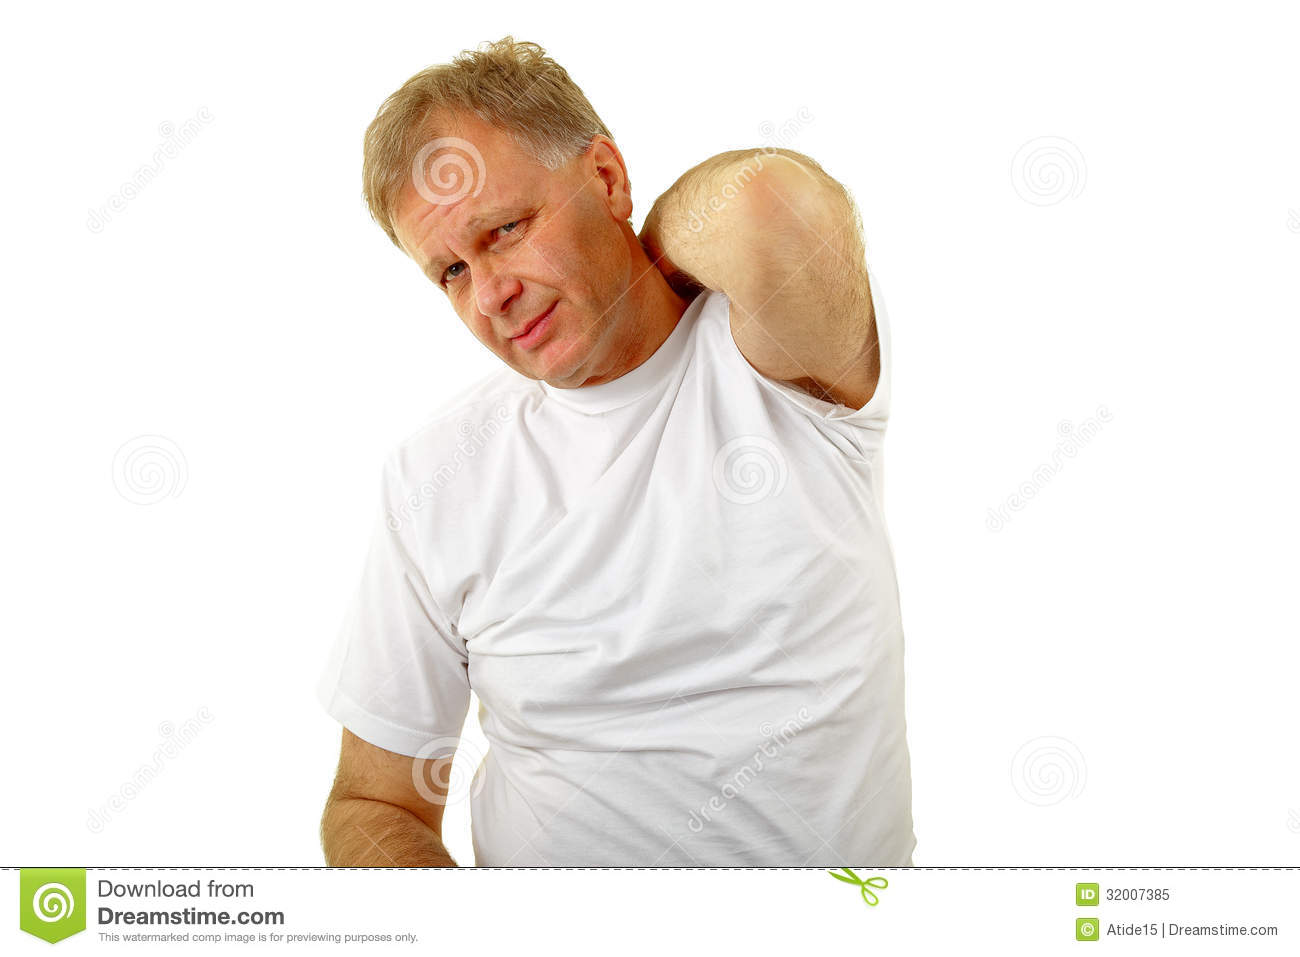 Itching Royalty Free Stock Photo - Image: 32007385